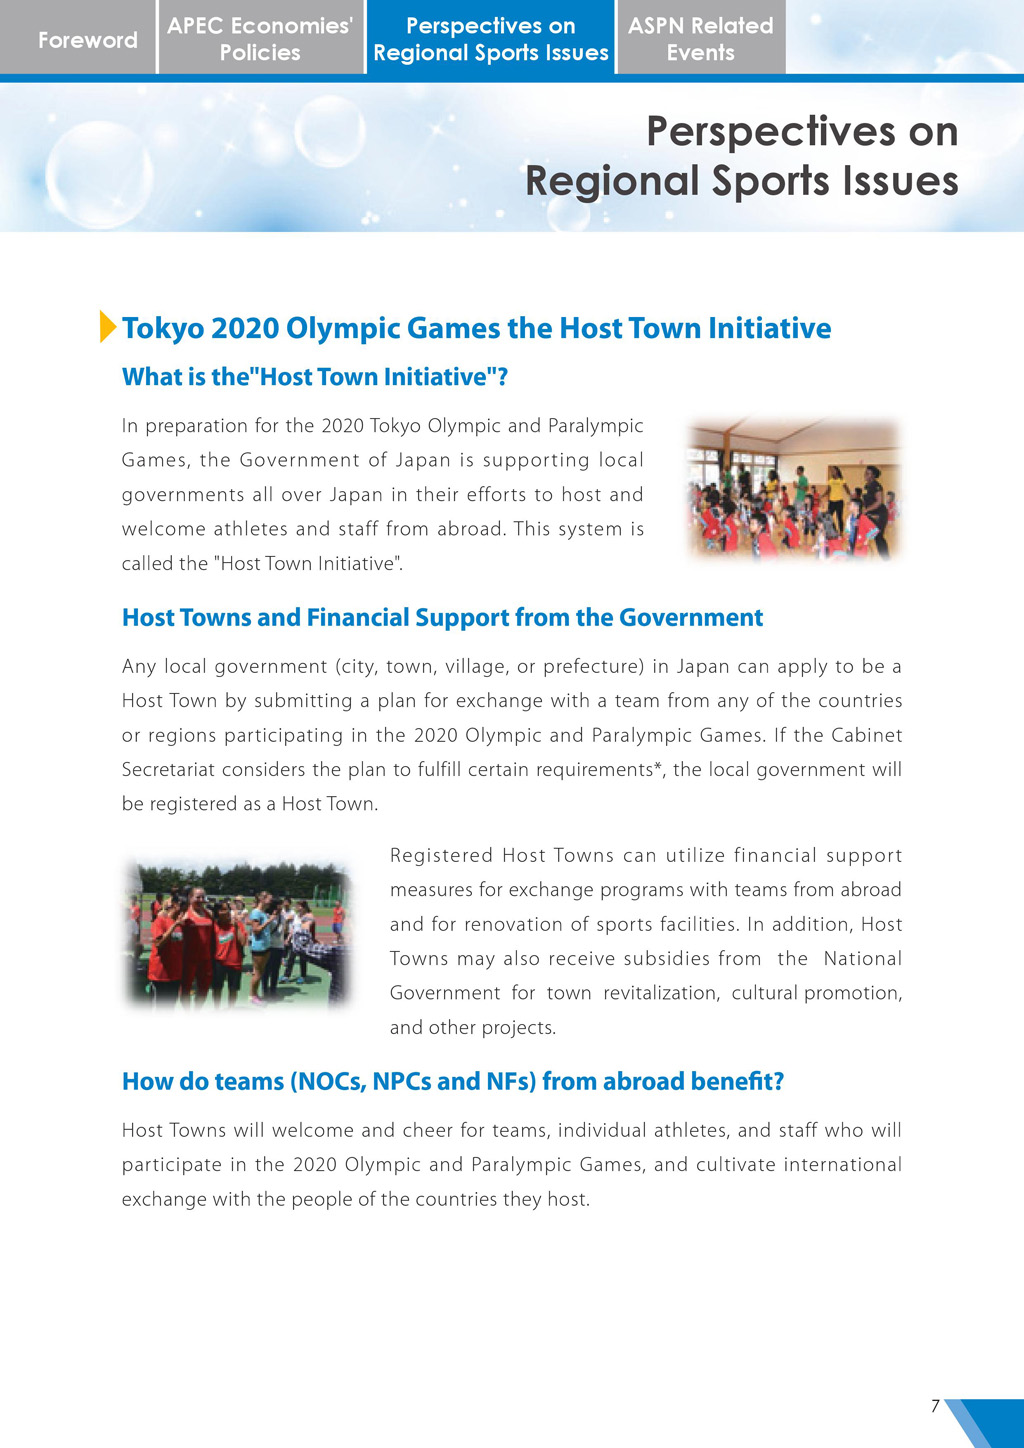 APEC Sports Newsletter Issue 1 April 2017 P.7